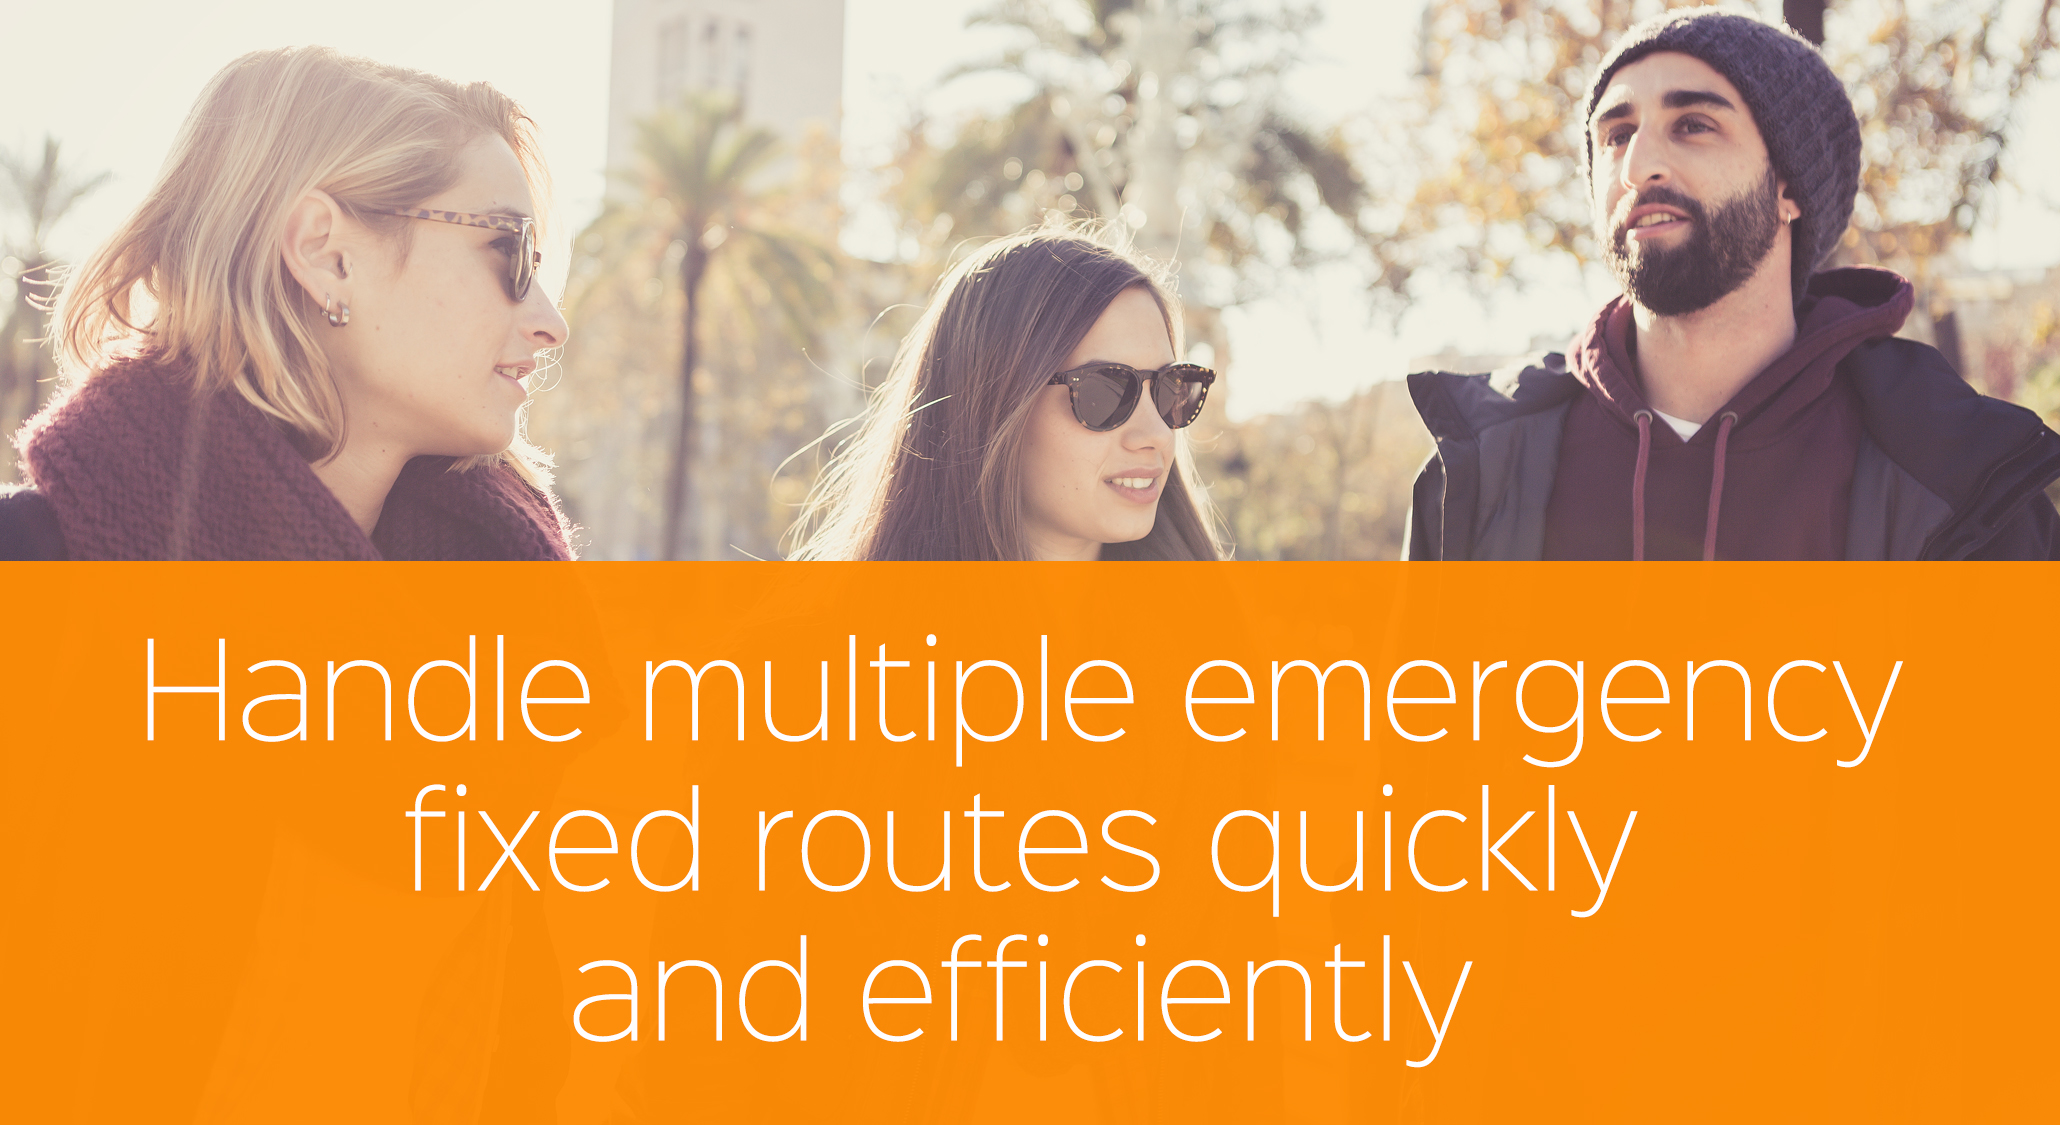 Our Fixed Route Software Creates Emergency Schedule Quickly